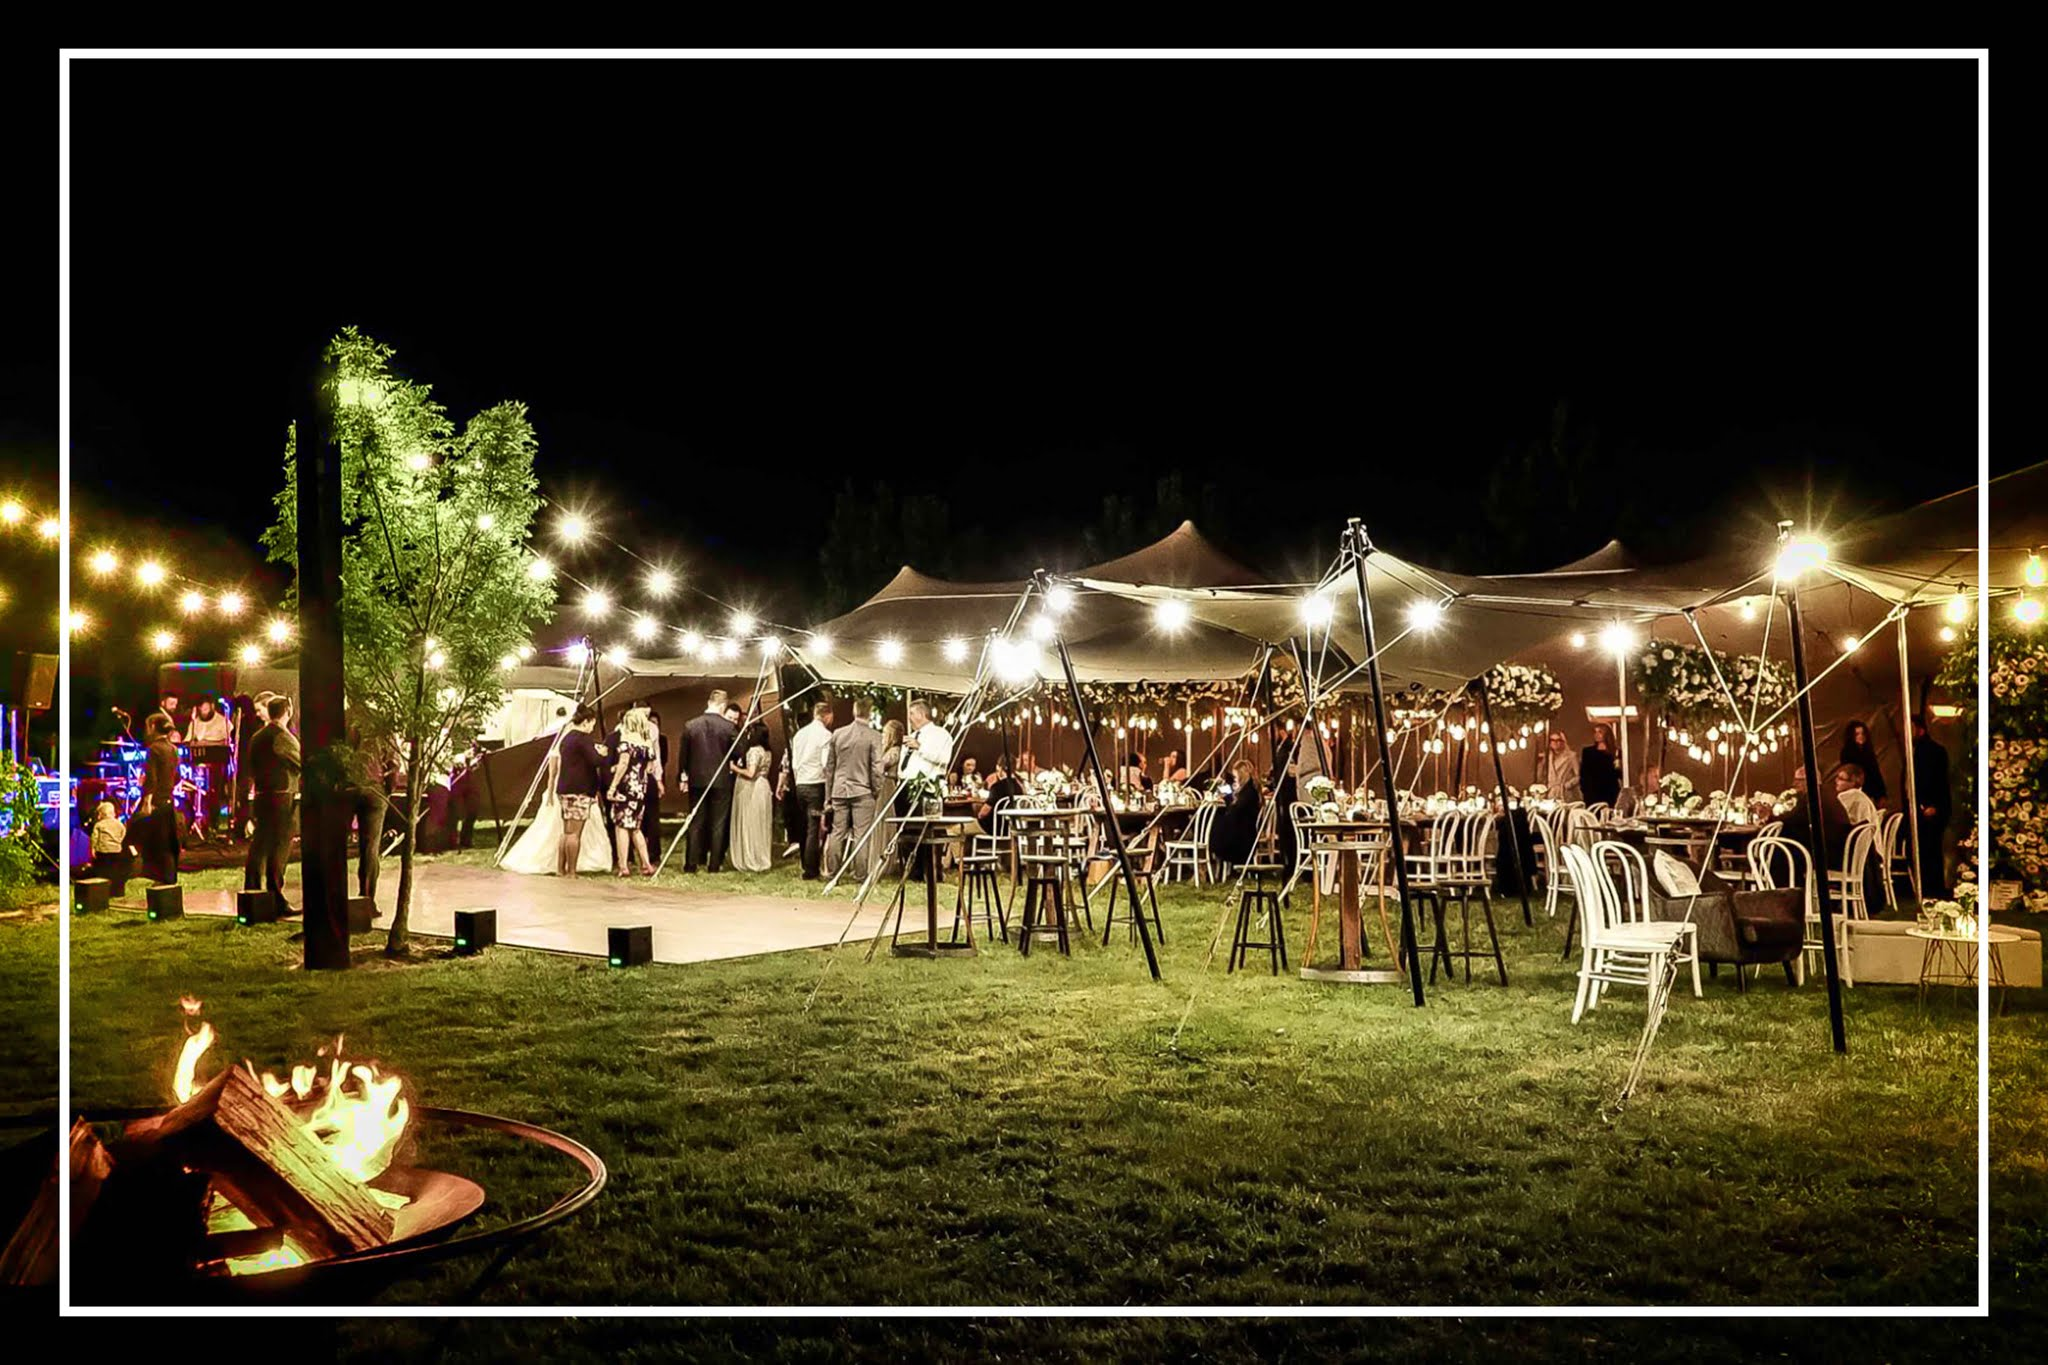 Weddings & celebration - Alphonso Agri Resort